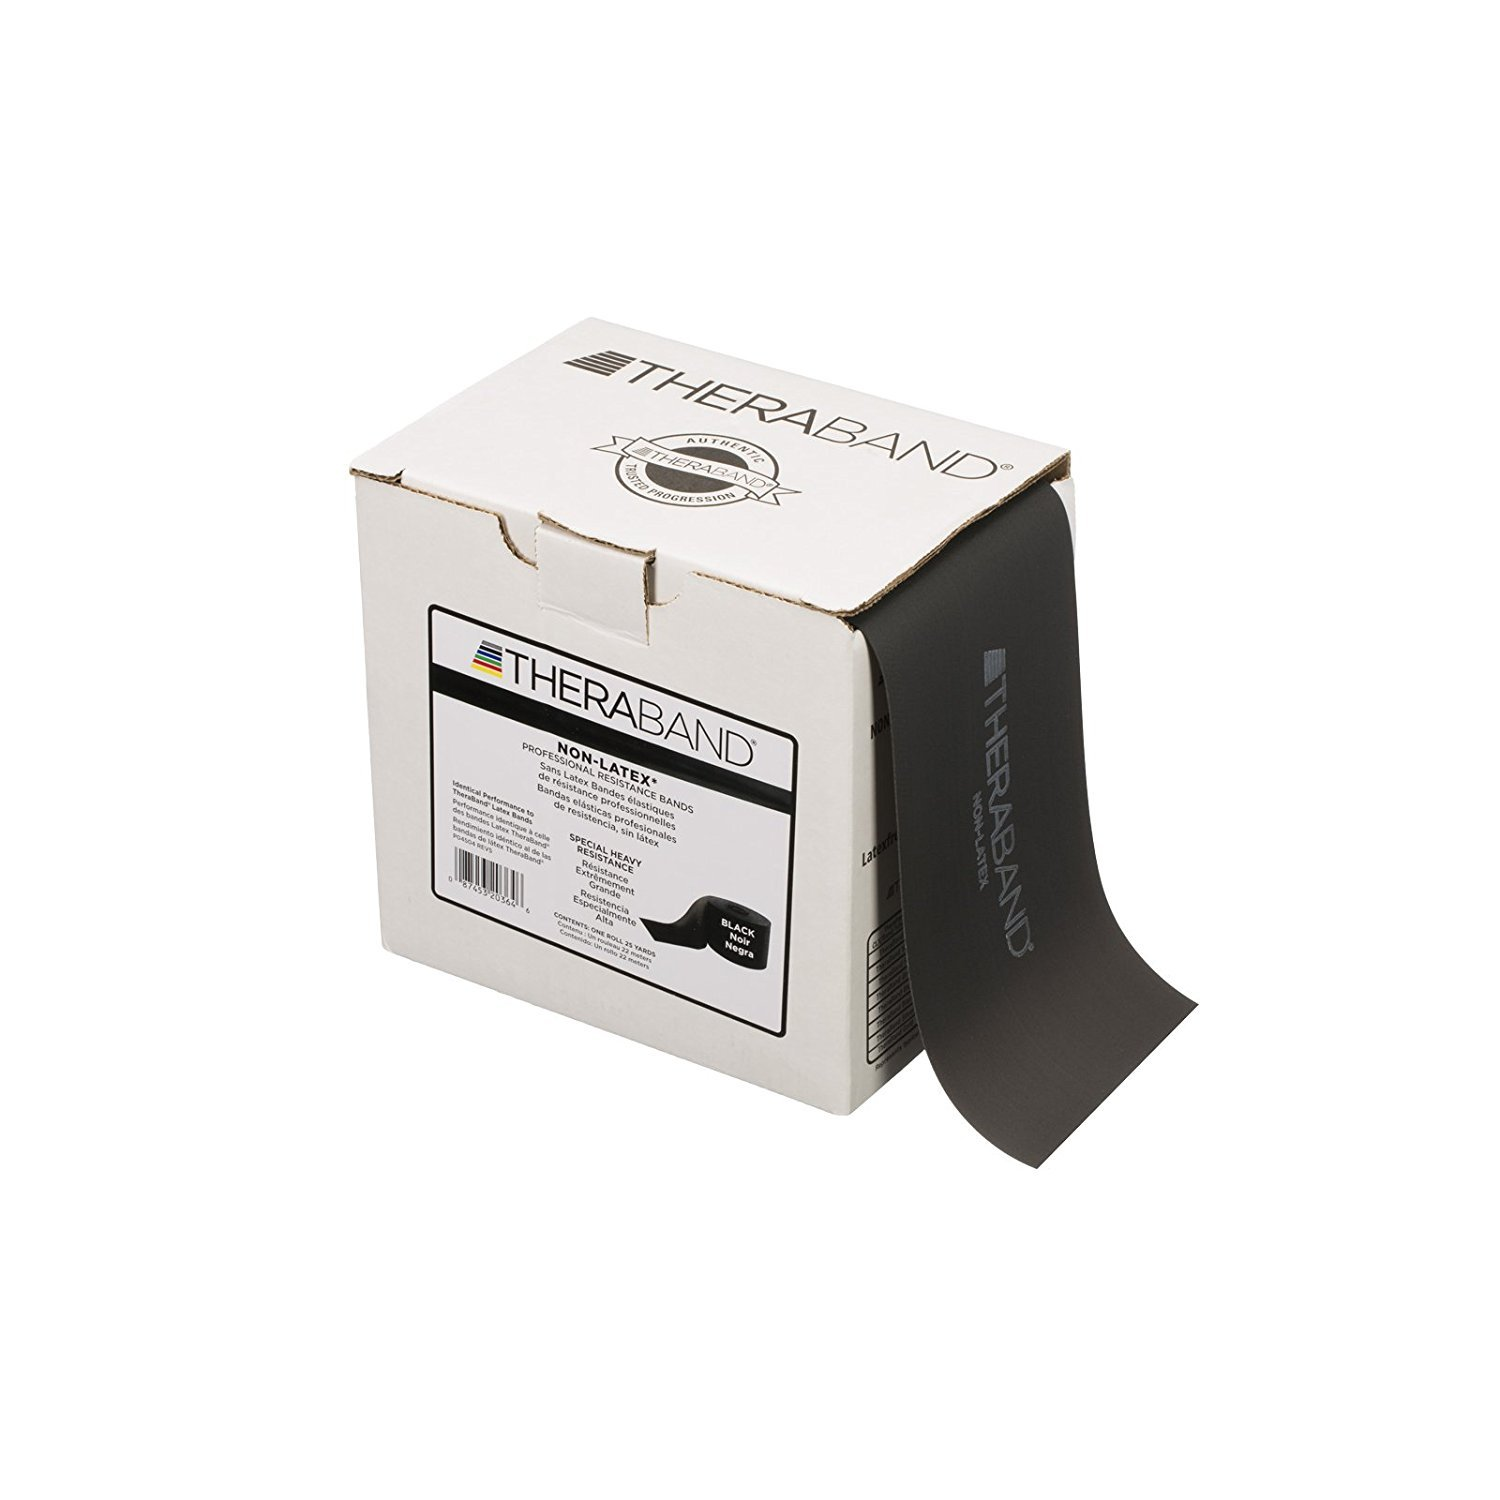 HYGENIC/THERA-BAND PROFESSIONAL RESISTANCE BANDS Resistance Band, Black/ Special Heavy, 50 Yd Dispenser Box, Latex Free (LF) (4 ea/cs) (HY11730, 021529)